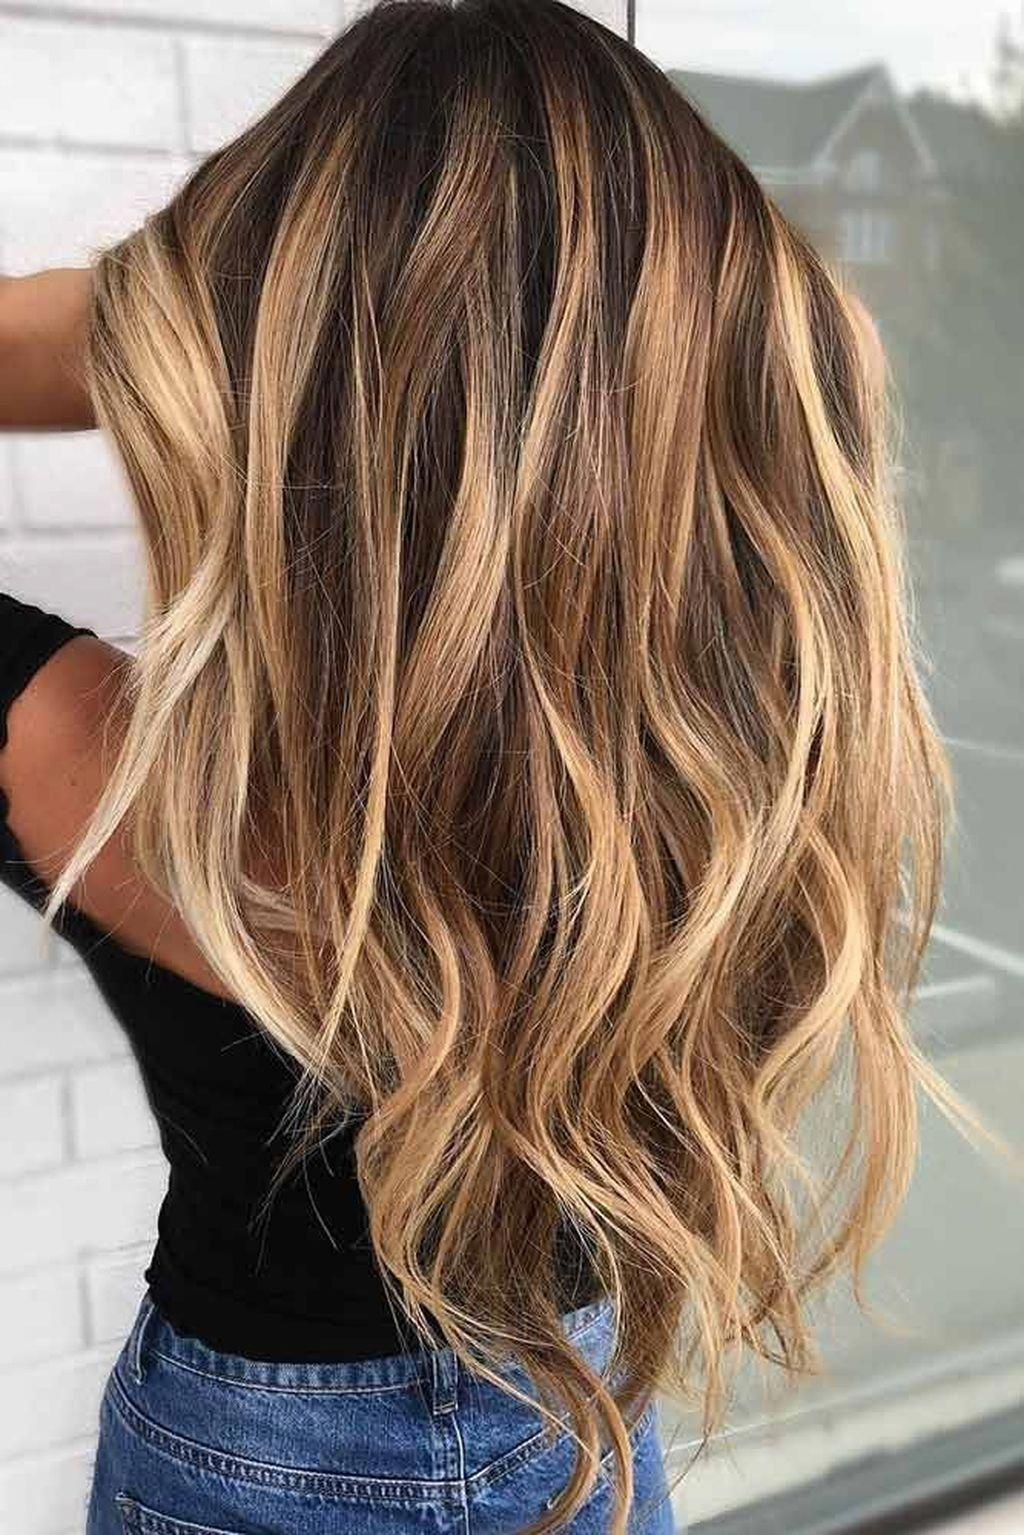 Do You Have Naturally Blond Hair Or Are Your Golden Locks Color Treated Have Frequent Hair Make Hair Color Light Brown Hair Color Balayage Blonde Hair Color